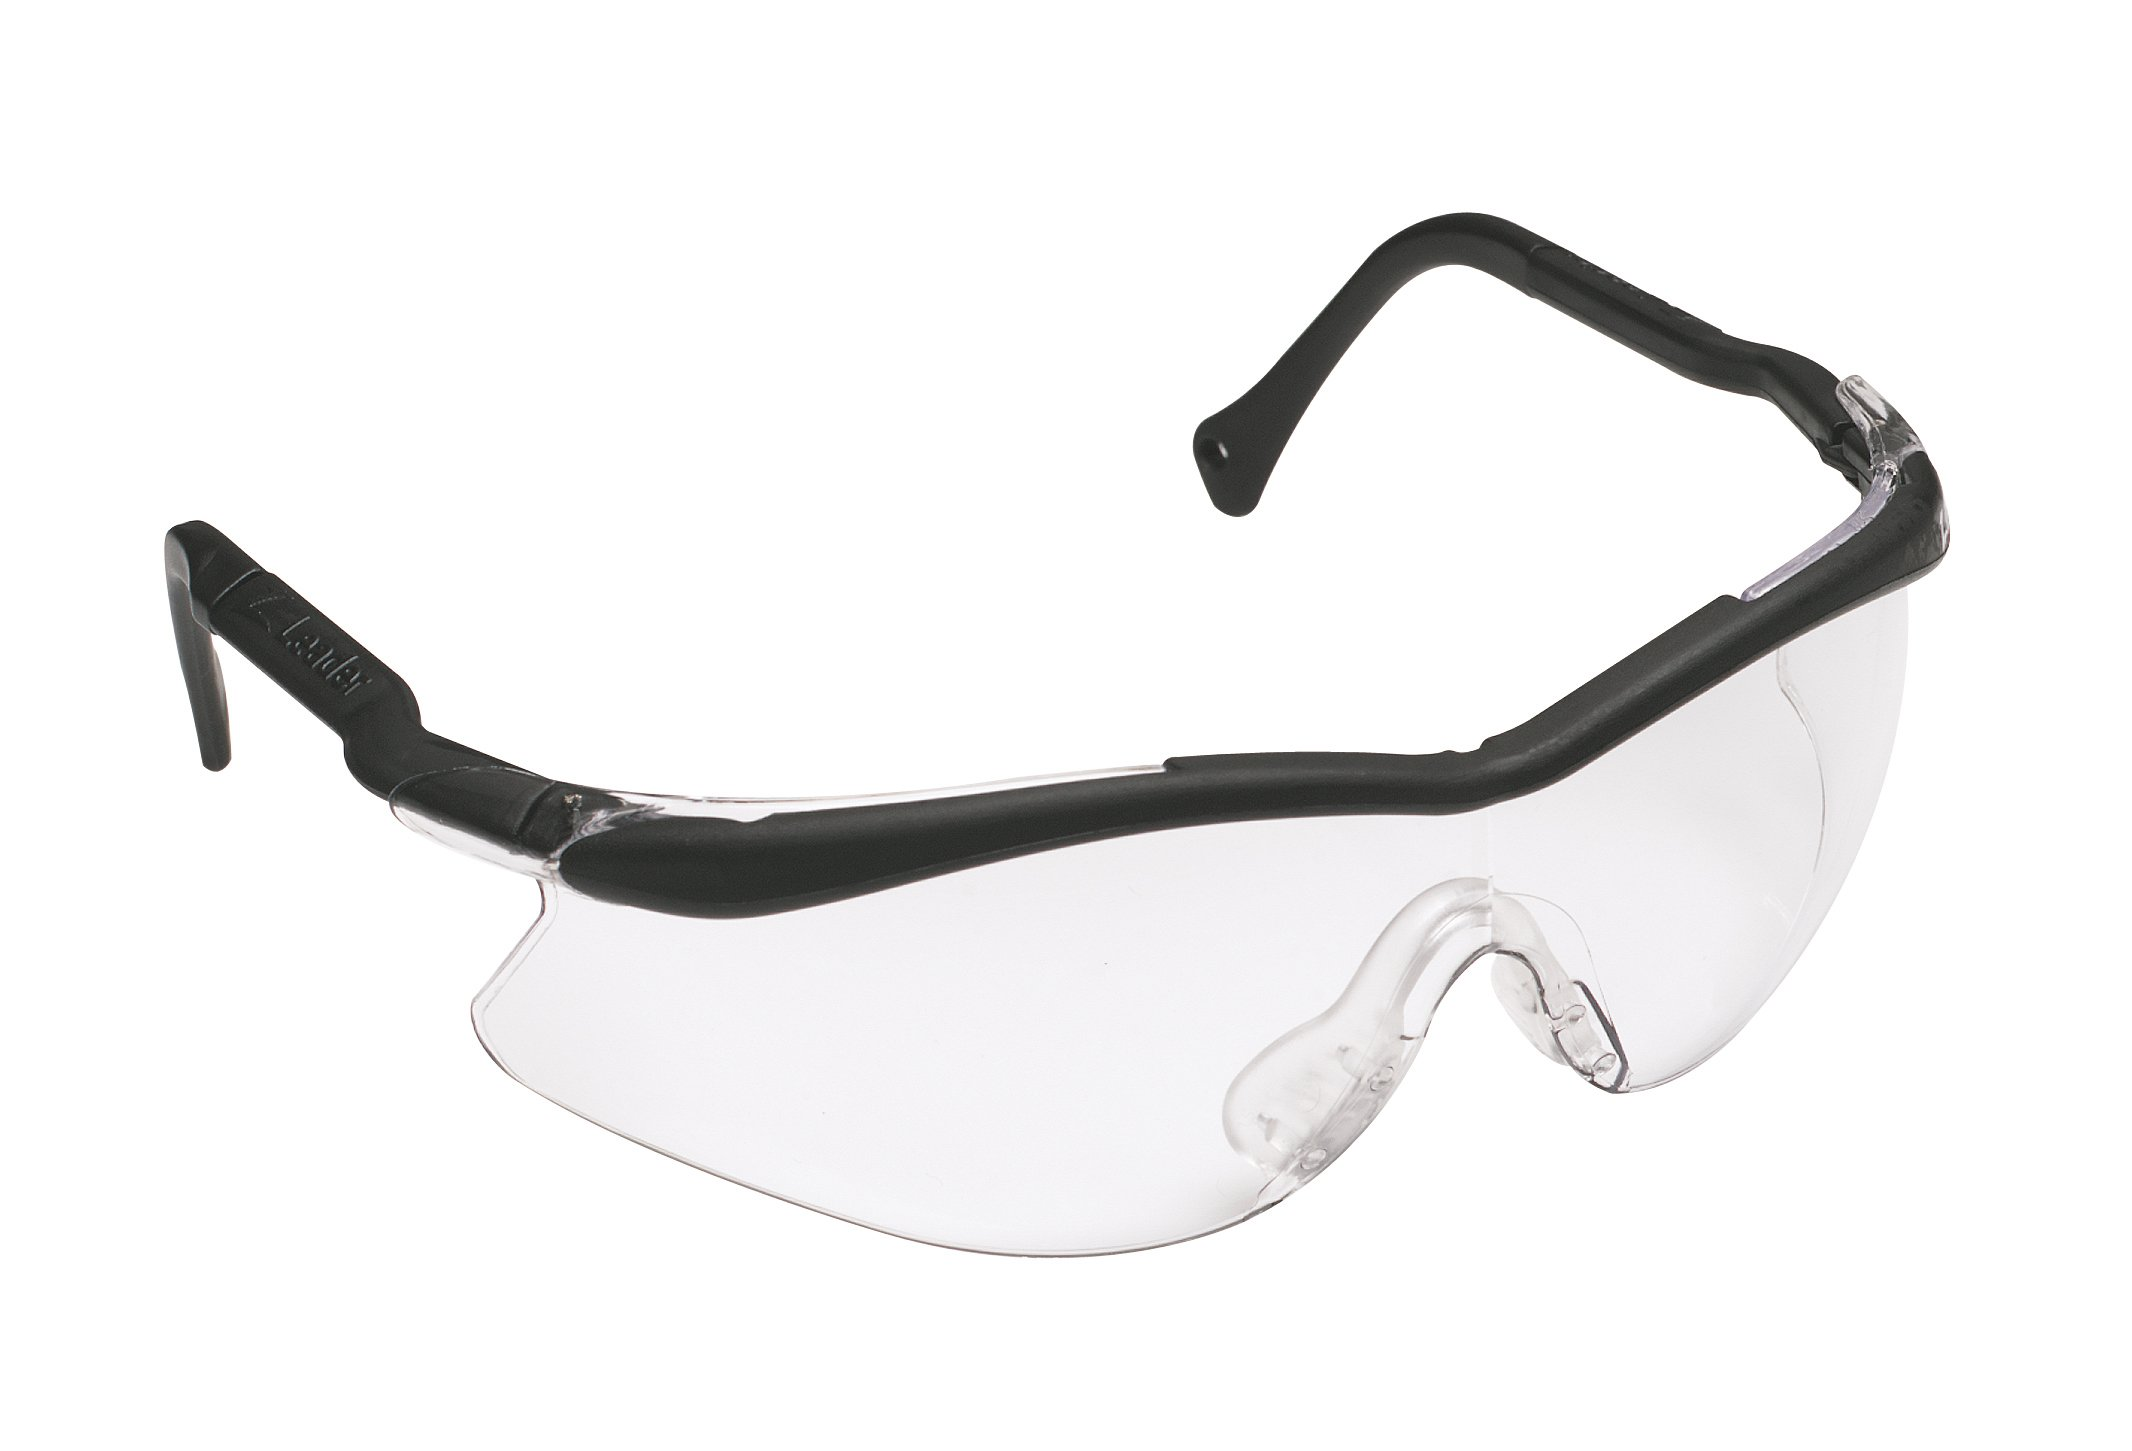 3M QX Protective Eyewear 2000, 12109-10000-20 Clear Lens, Black Temple, Soft NB (Pack of 20)